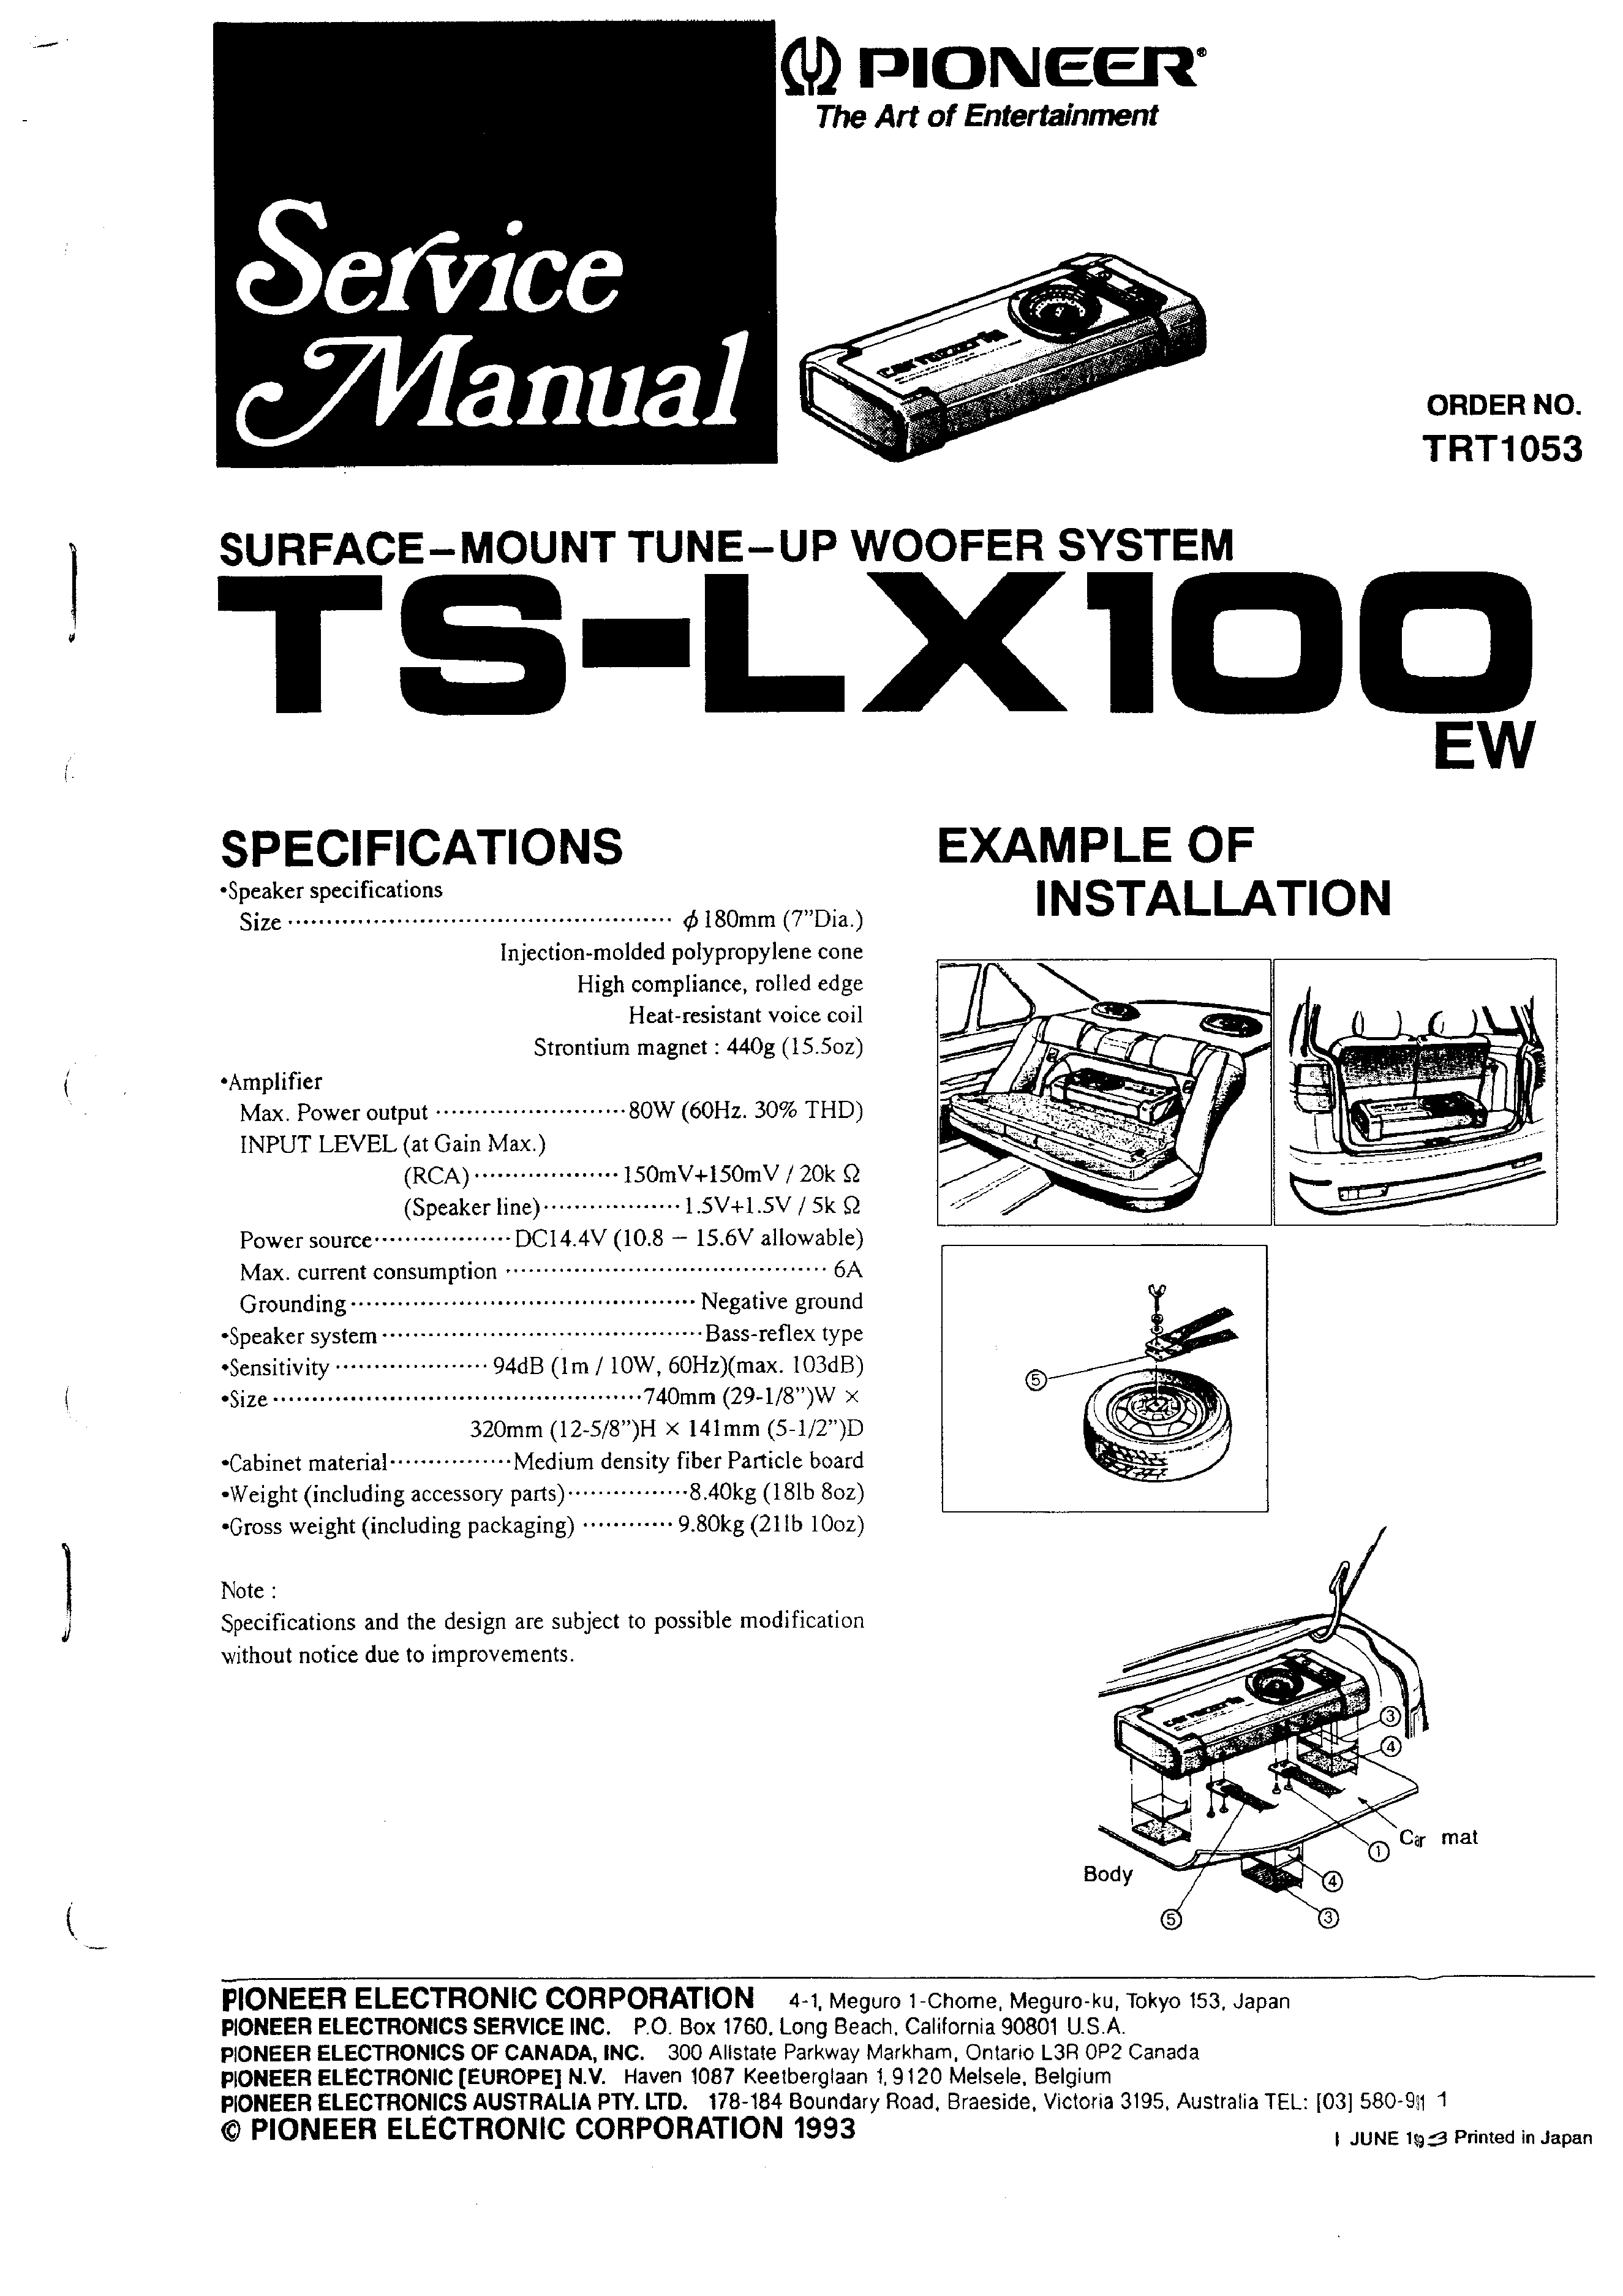 Pioneer tslx100 service manual immediate download background image asfbconference2016 Image collections